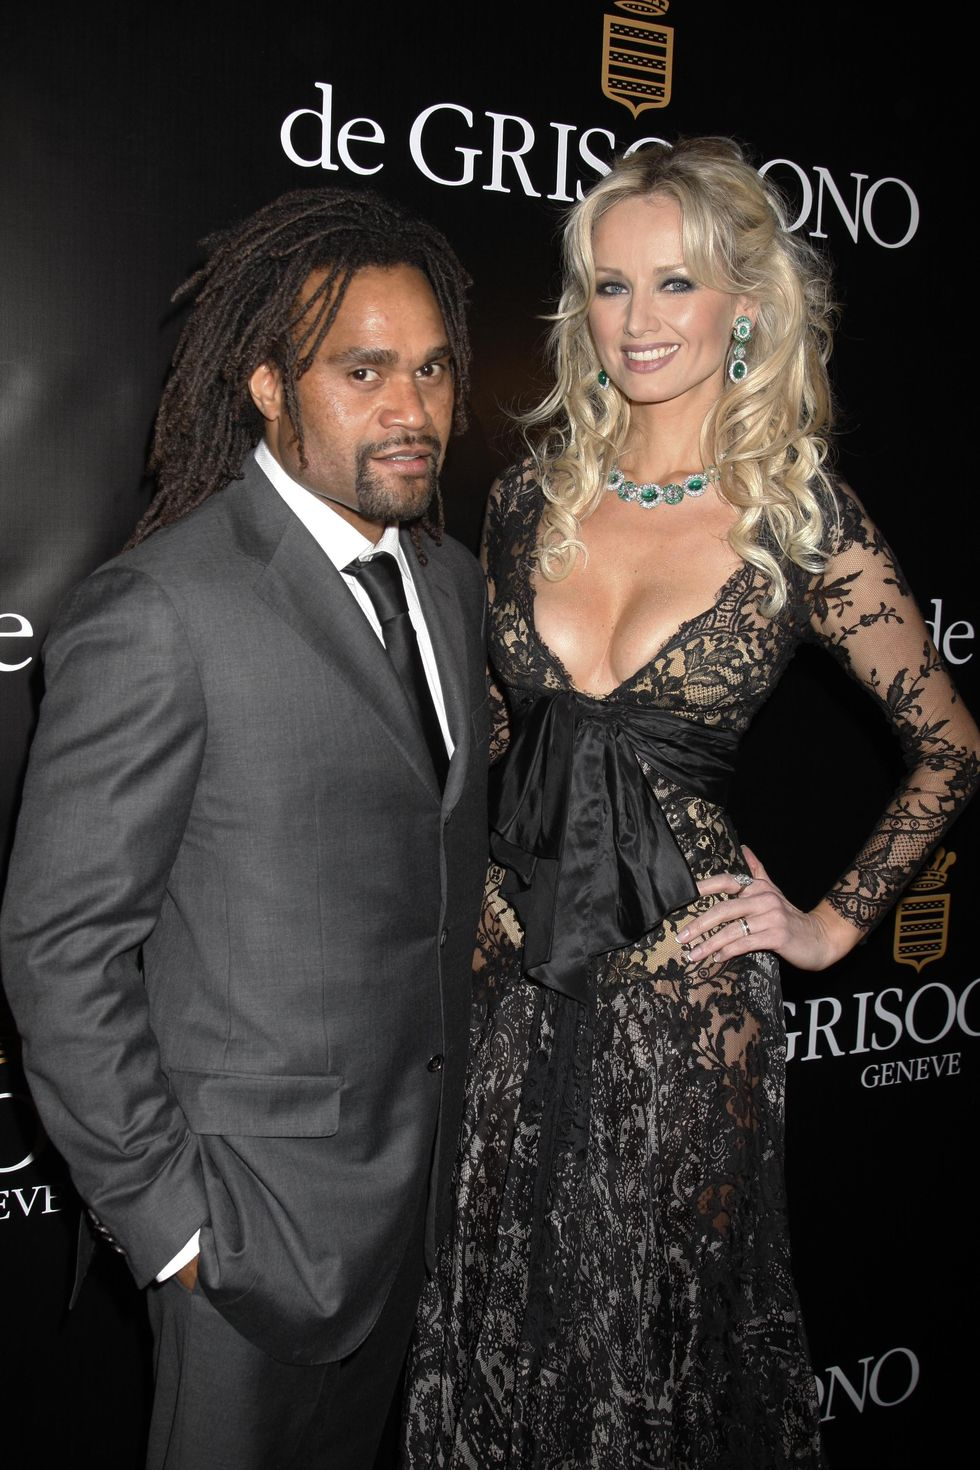 adriana-karembeu-de-griosono-launch-party-in-gstaad-01